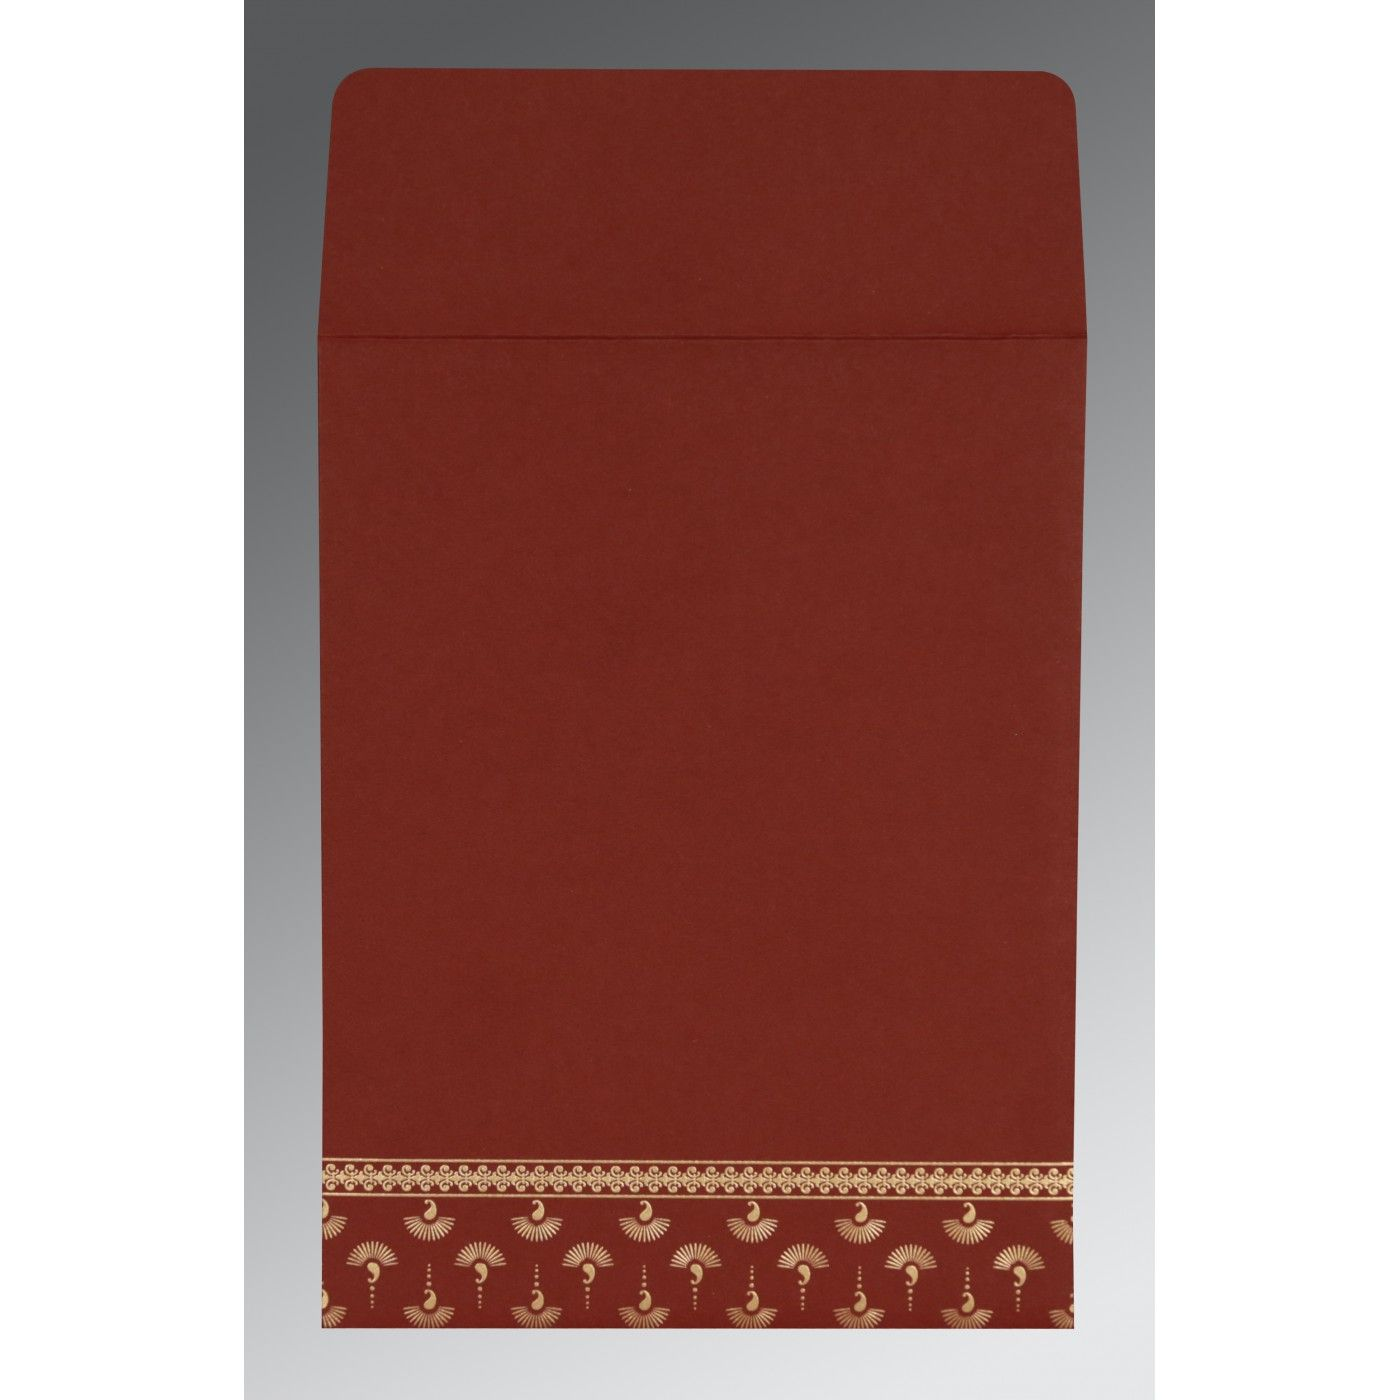 MAROON MATTE SCREEN PRINTED WEDDING INVITATION : CD-8247D - IndianWeddingCards